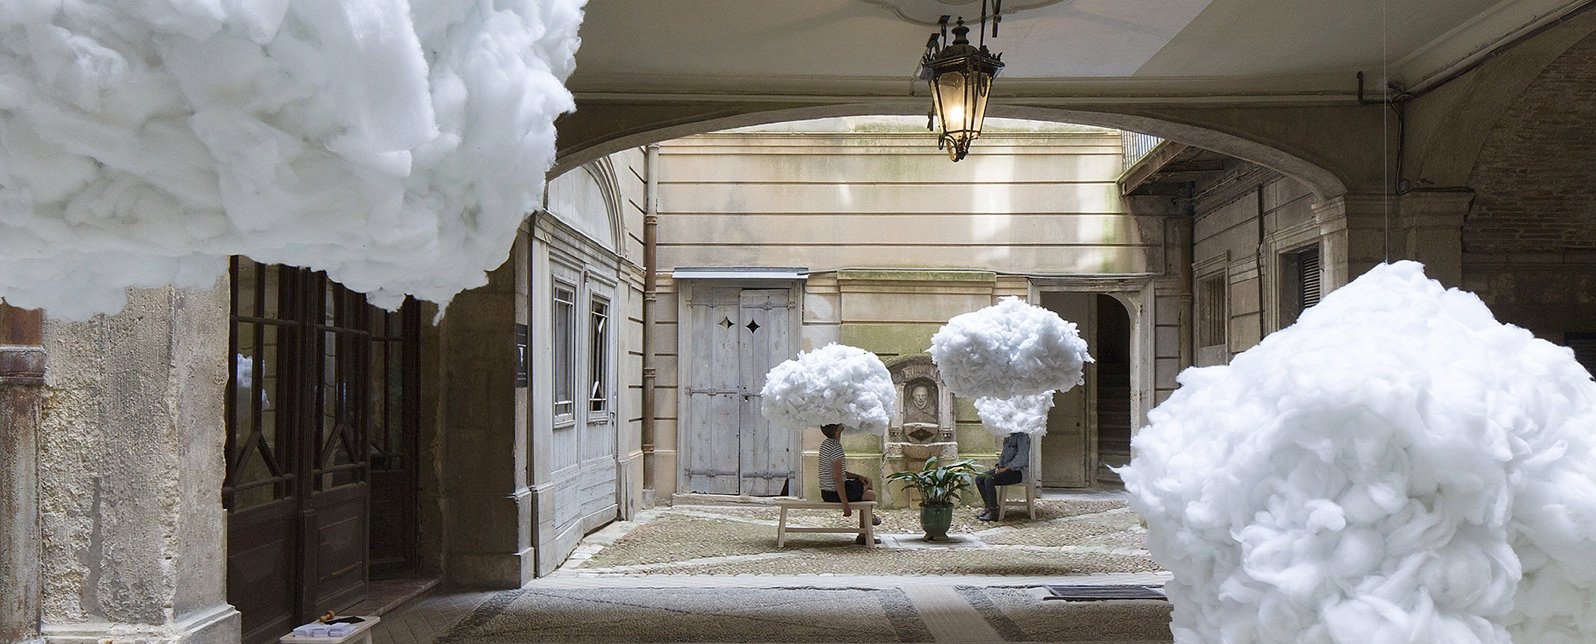 Head in the clouds mickael martins afonso escaffre caroline faure festival des architectures vives designboom 1800